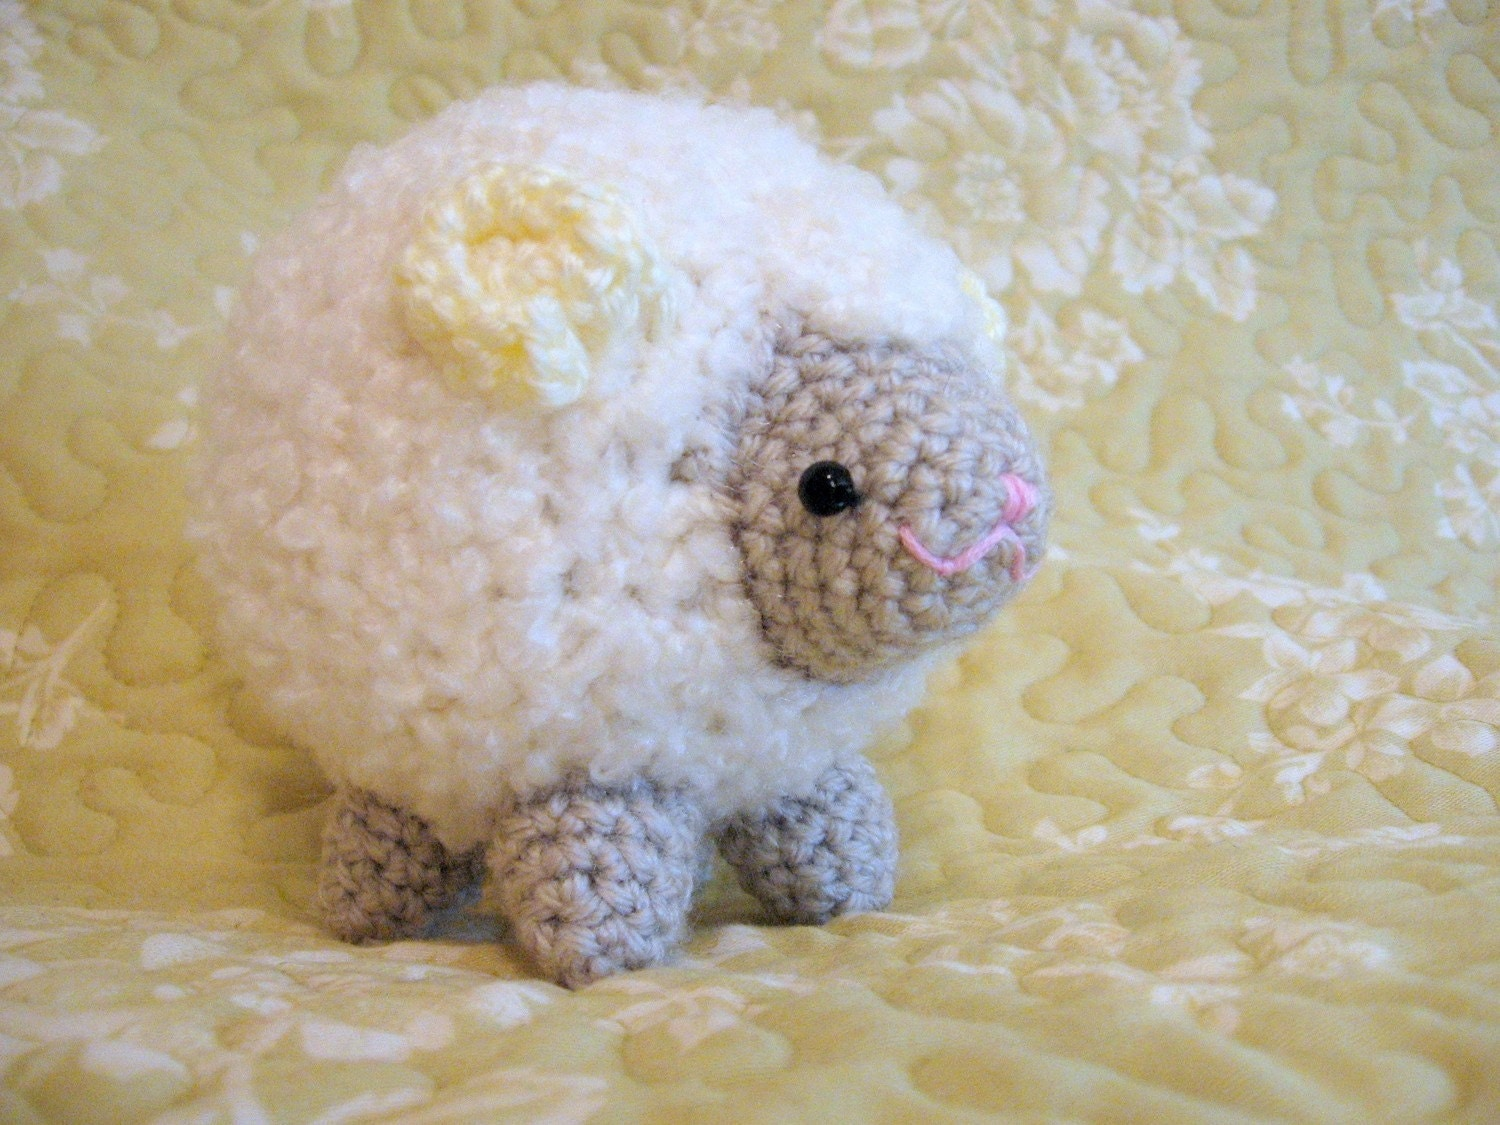 Crochet amigurumi sheep pattern kalulu for amigurumi crochet pattern sheep cloud by homemadezen on etsy bankloansurffo Gallery